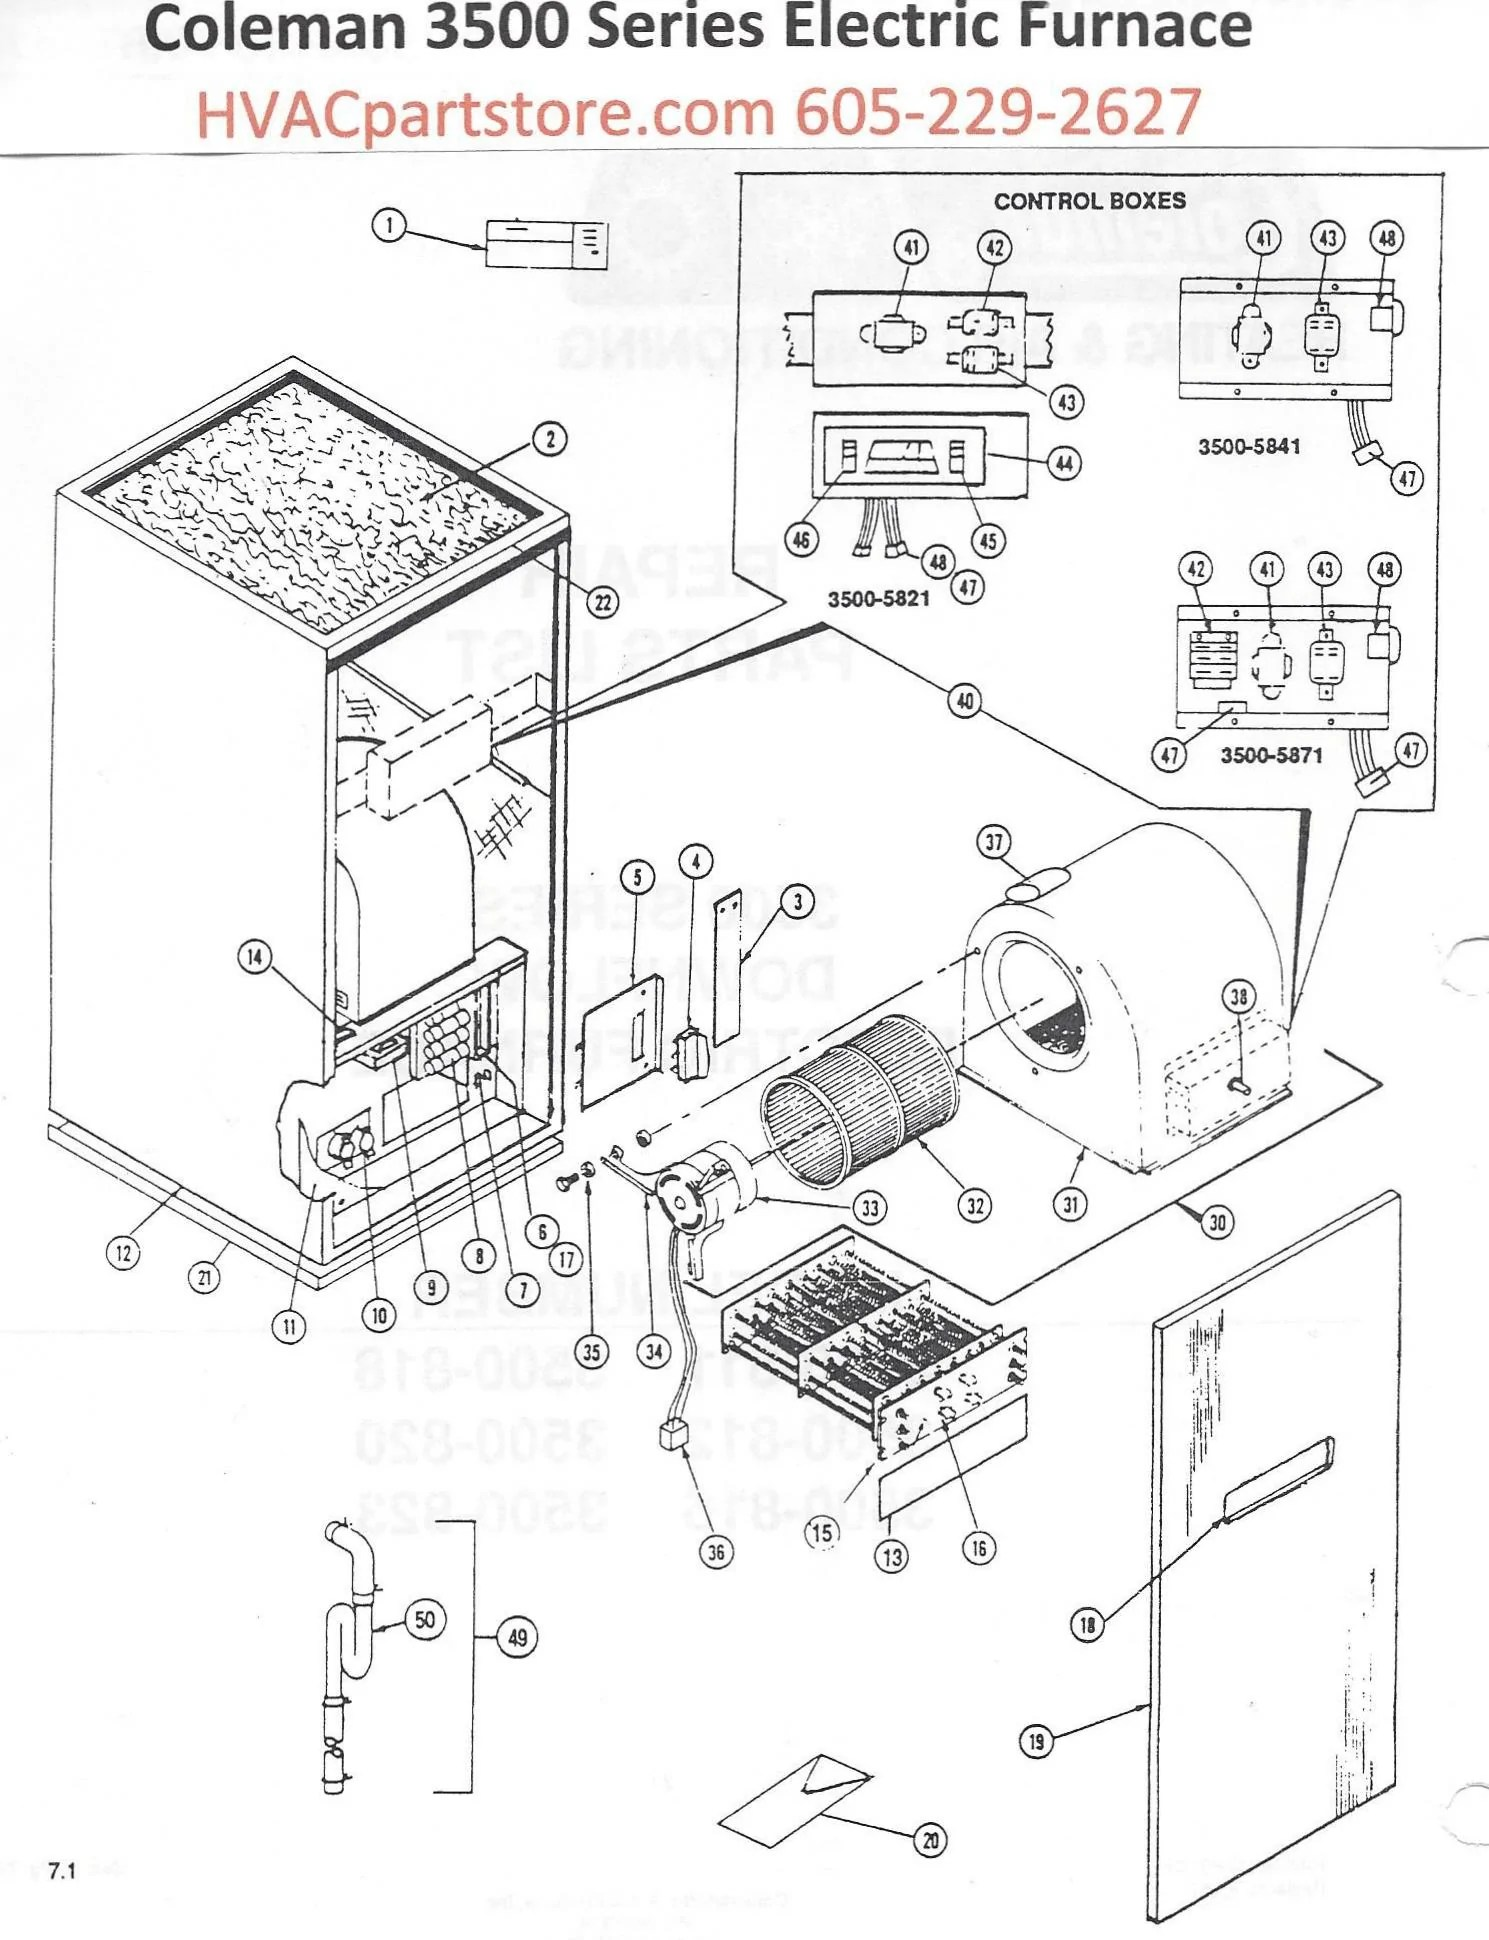 3500 811 coleman electric furnace parts hvacpartstore armstrong air handler wiring diagram electric heat pump wiring [ 1489 x 1940 Pixel ]